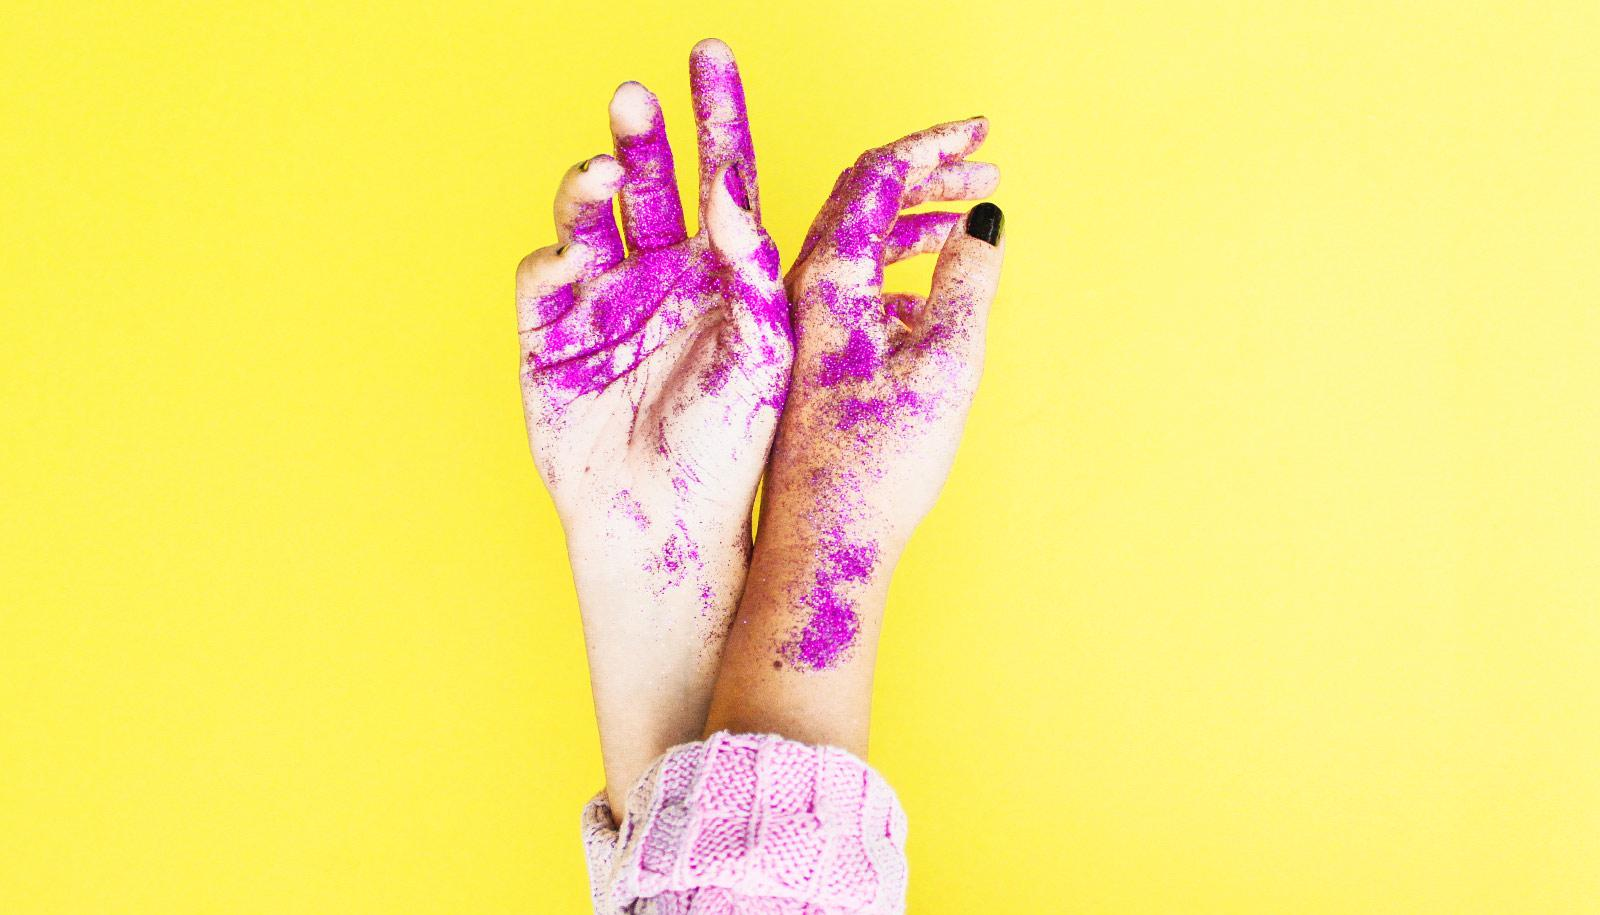 pink glitter on hands against yellow